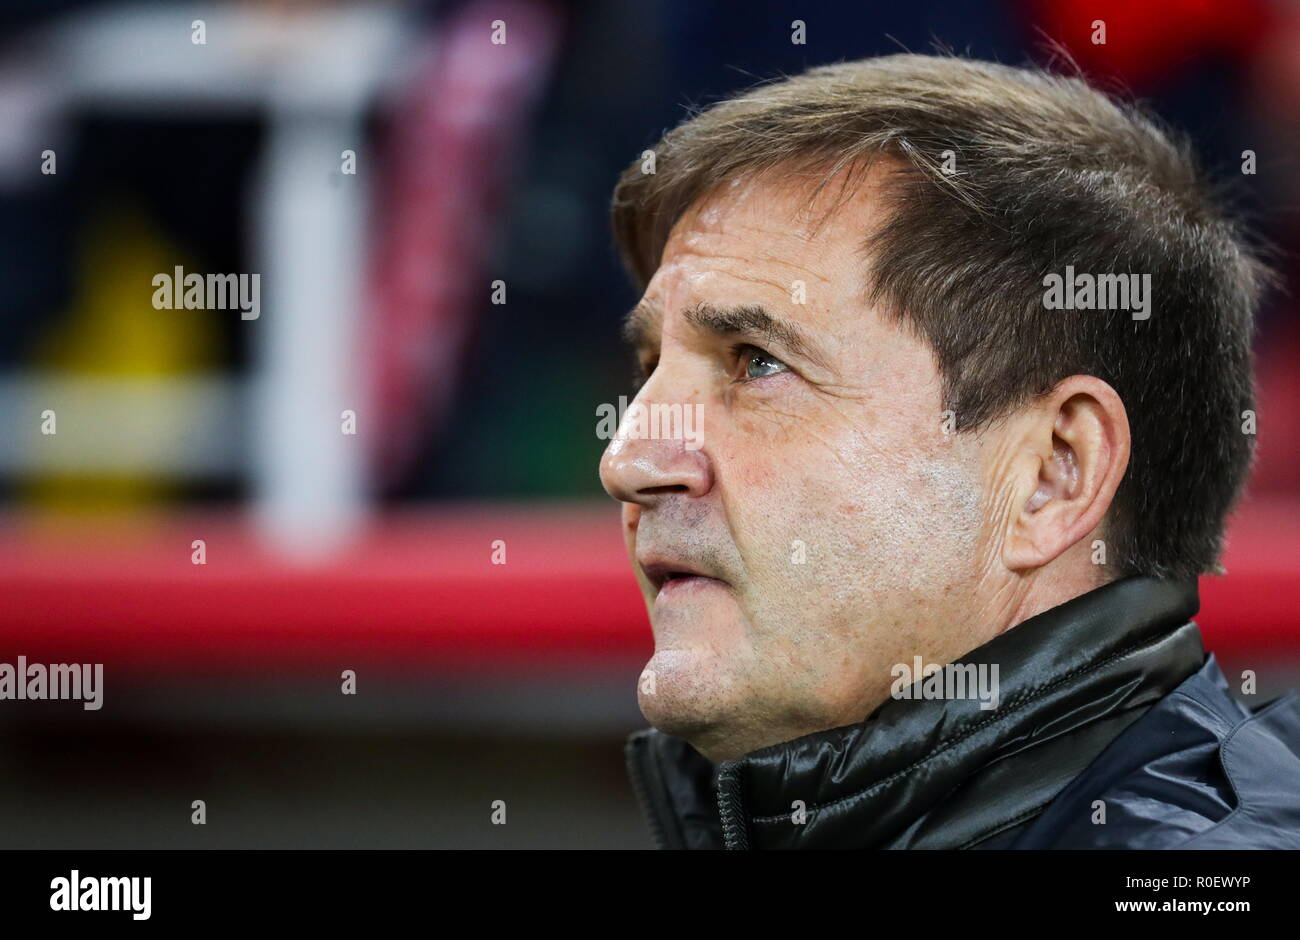 Moscow, Russia. 04th Nov, 2018. MOSCOW, RUSSIA - NOVEMBER 4, 2018: Spartak Moscow's acting head coach Raul Riancho during a 2018/2019 Russian Football Premiere League Round 13 football match between Spartak Moscow and Ural Yekaterinburg at Otrkytiye Arena. Sergei Savostyanov/TASS Credit: ITAR-TASS News Agency/Alamy Live News - Stock Image